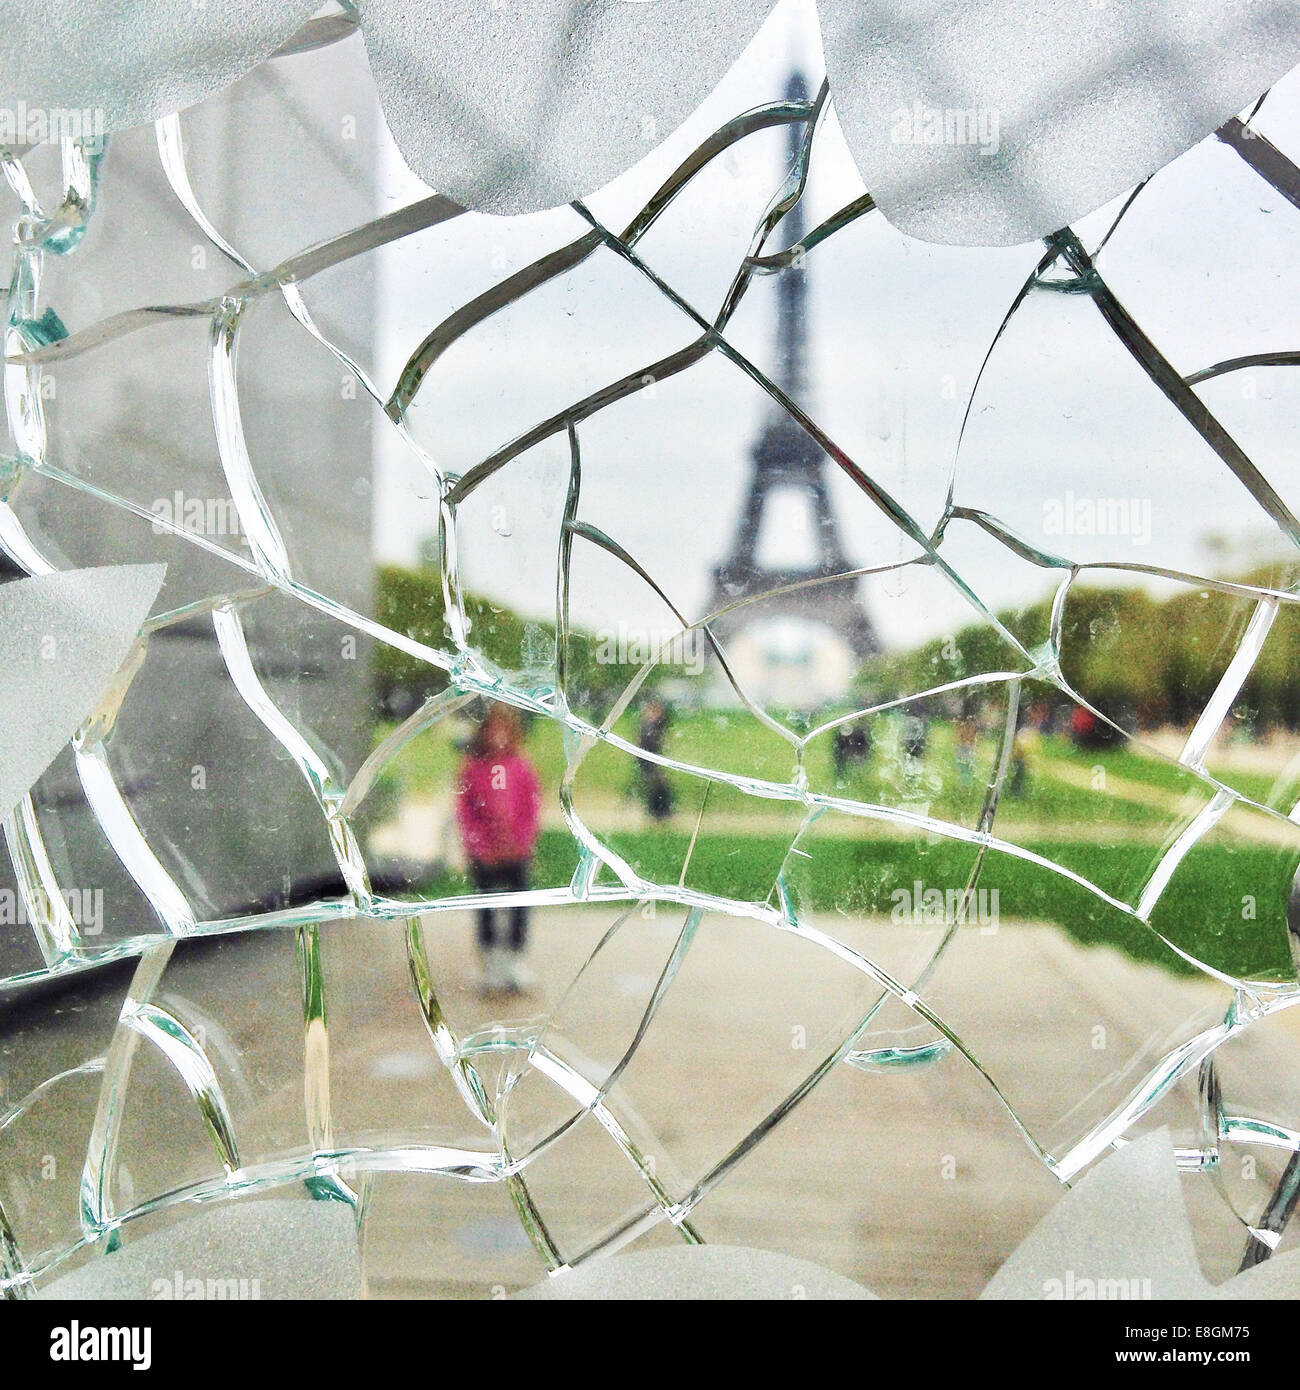 France, Paris, Eiffel Tower viewed through cracked pane of glass - Stock Image